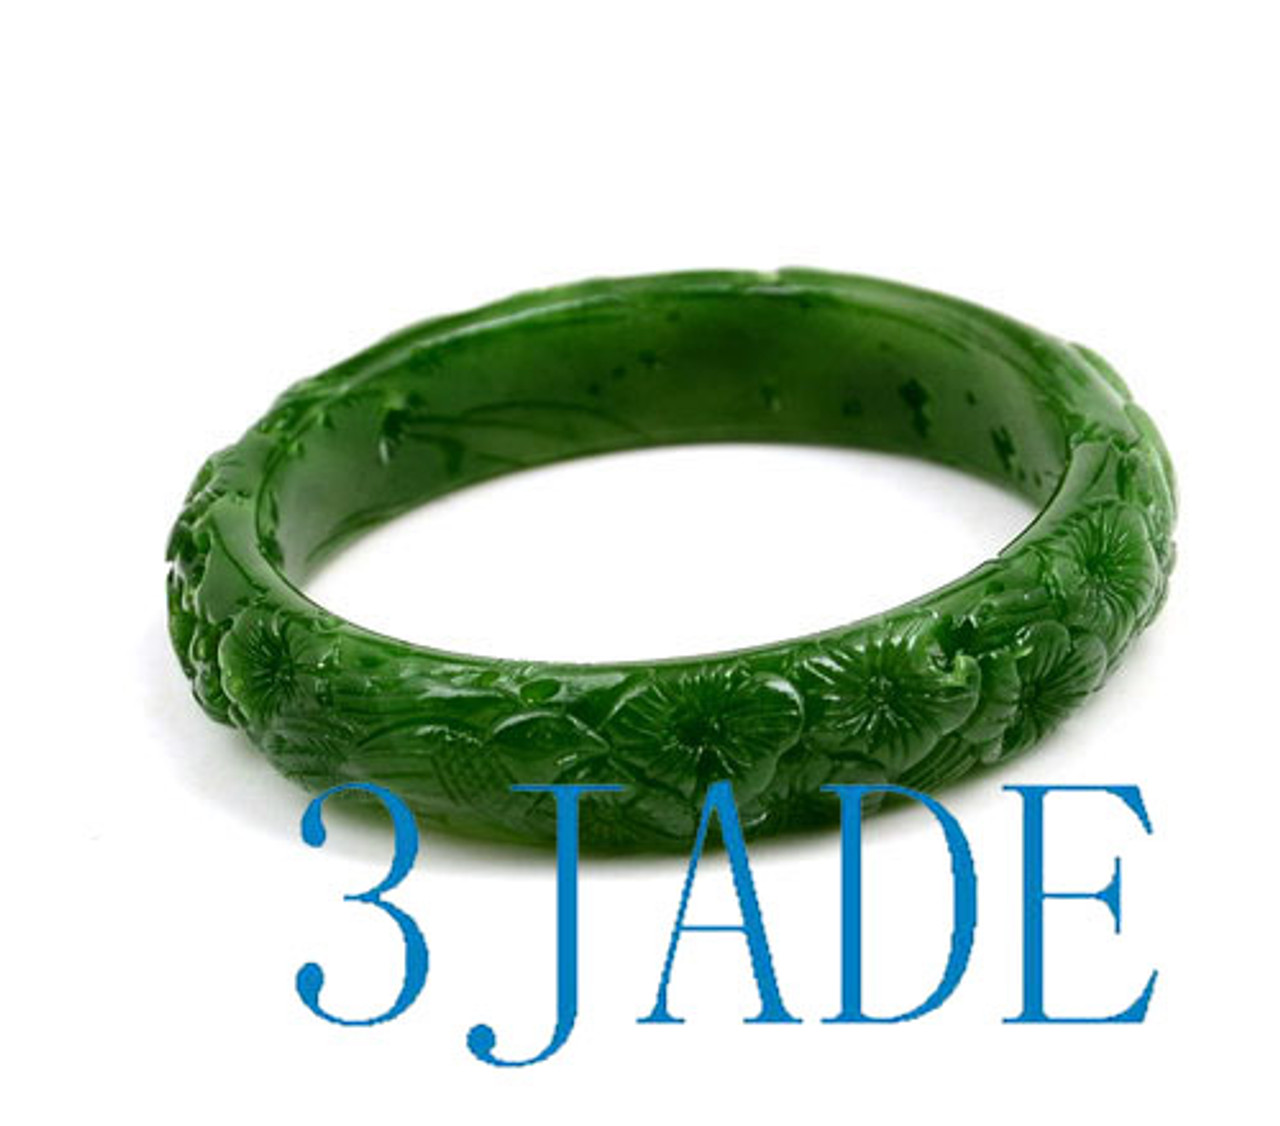 60mm carved green nephrite jade bangle